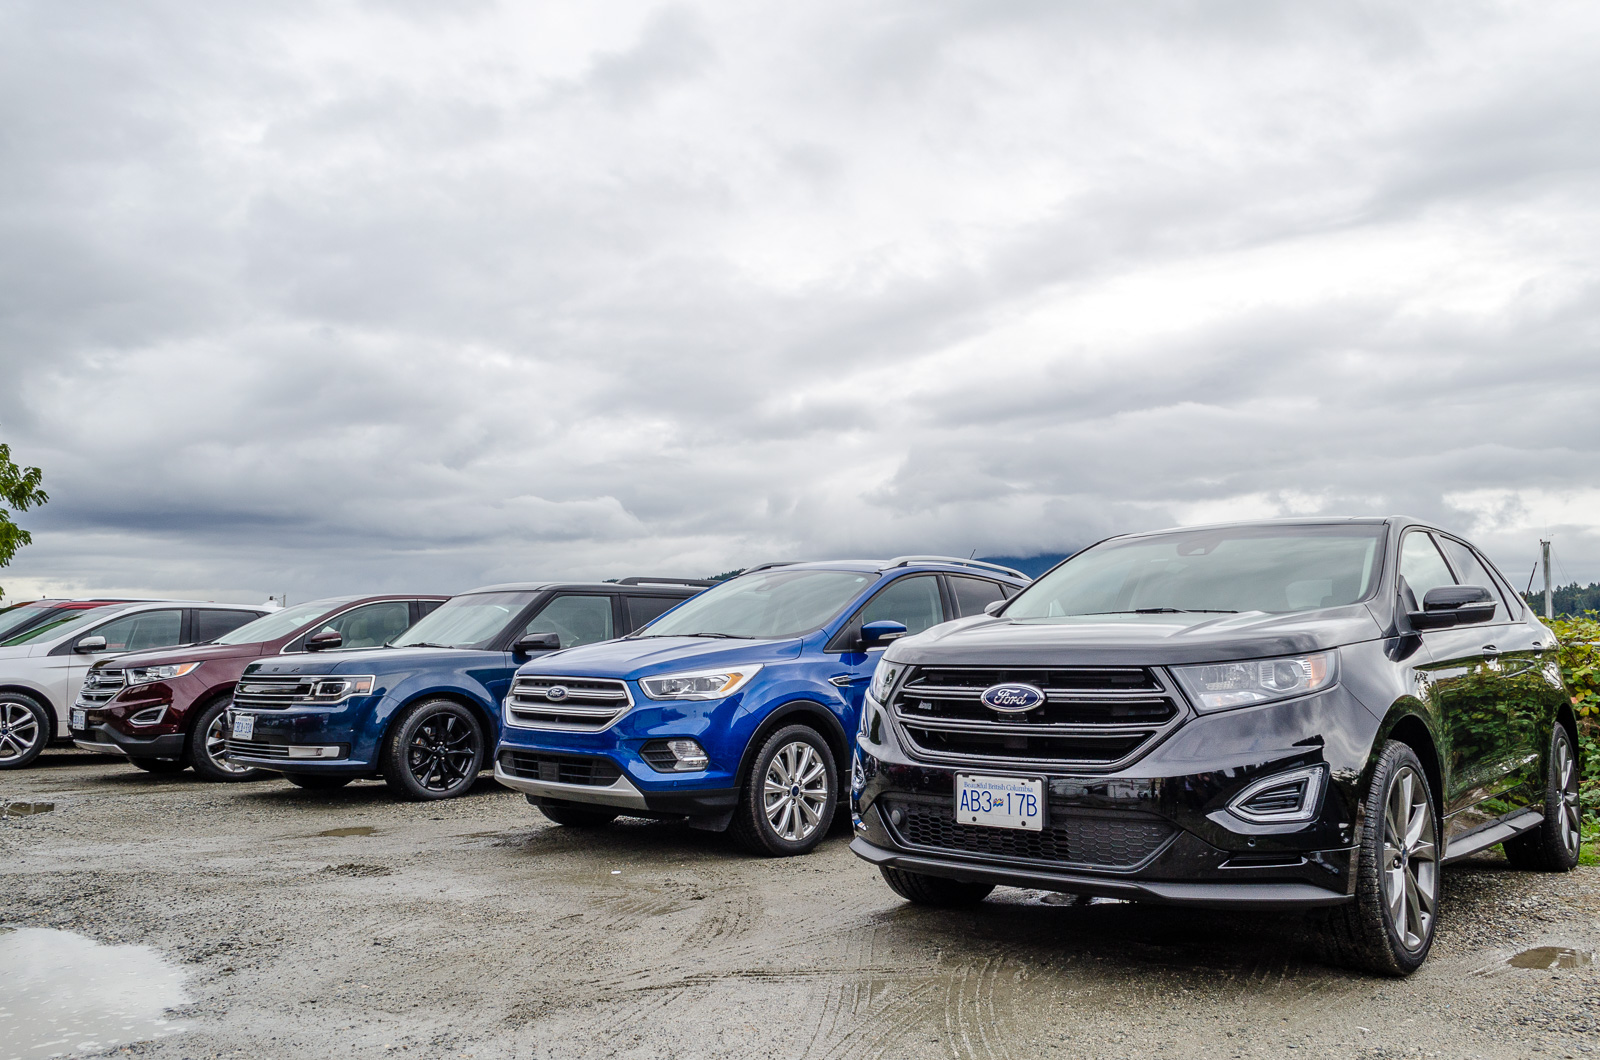 We recently got invited to test drive fords 2017 suv line up in the sunshine coast ford offers customer a diverse choice from compact crossover to luxury